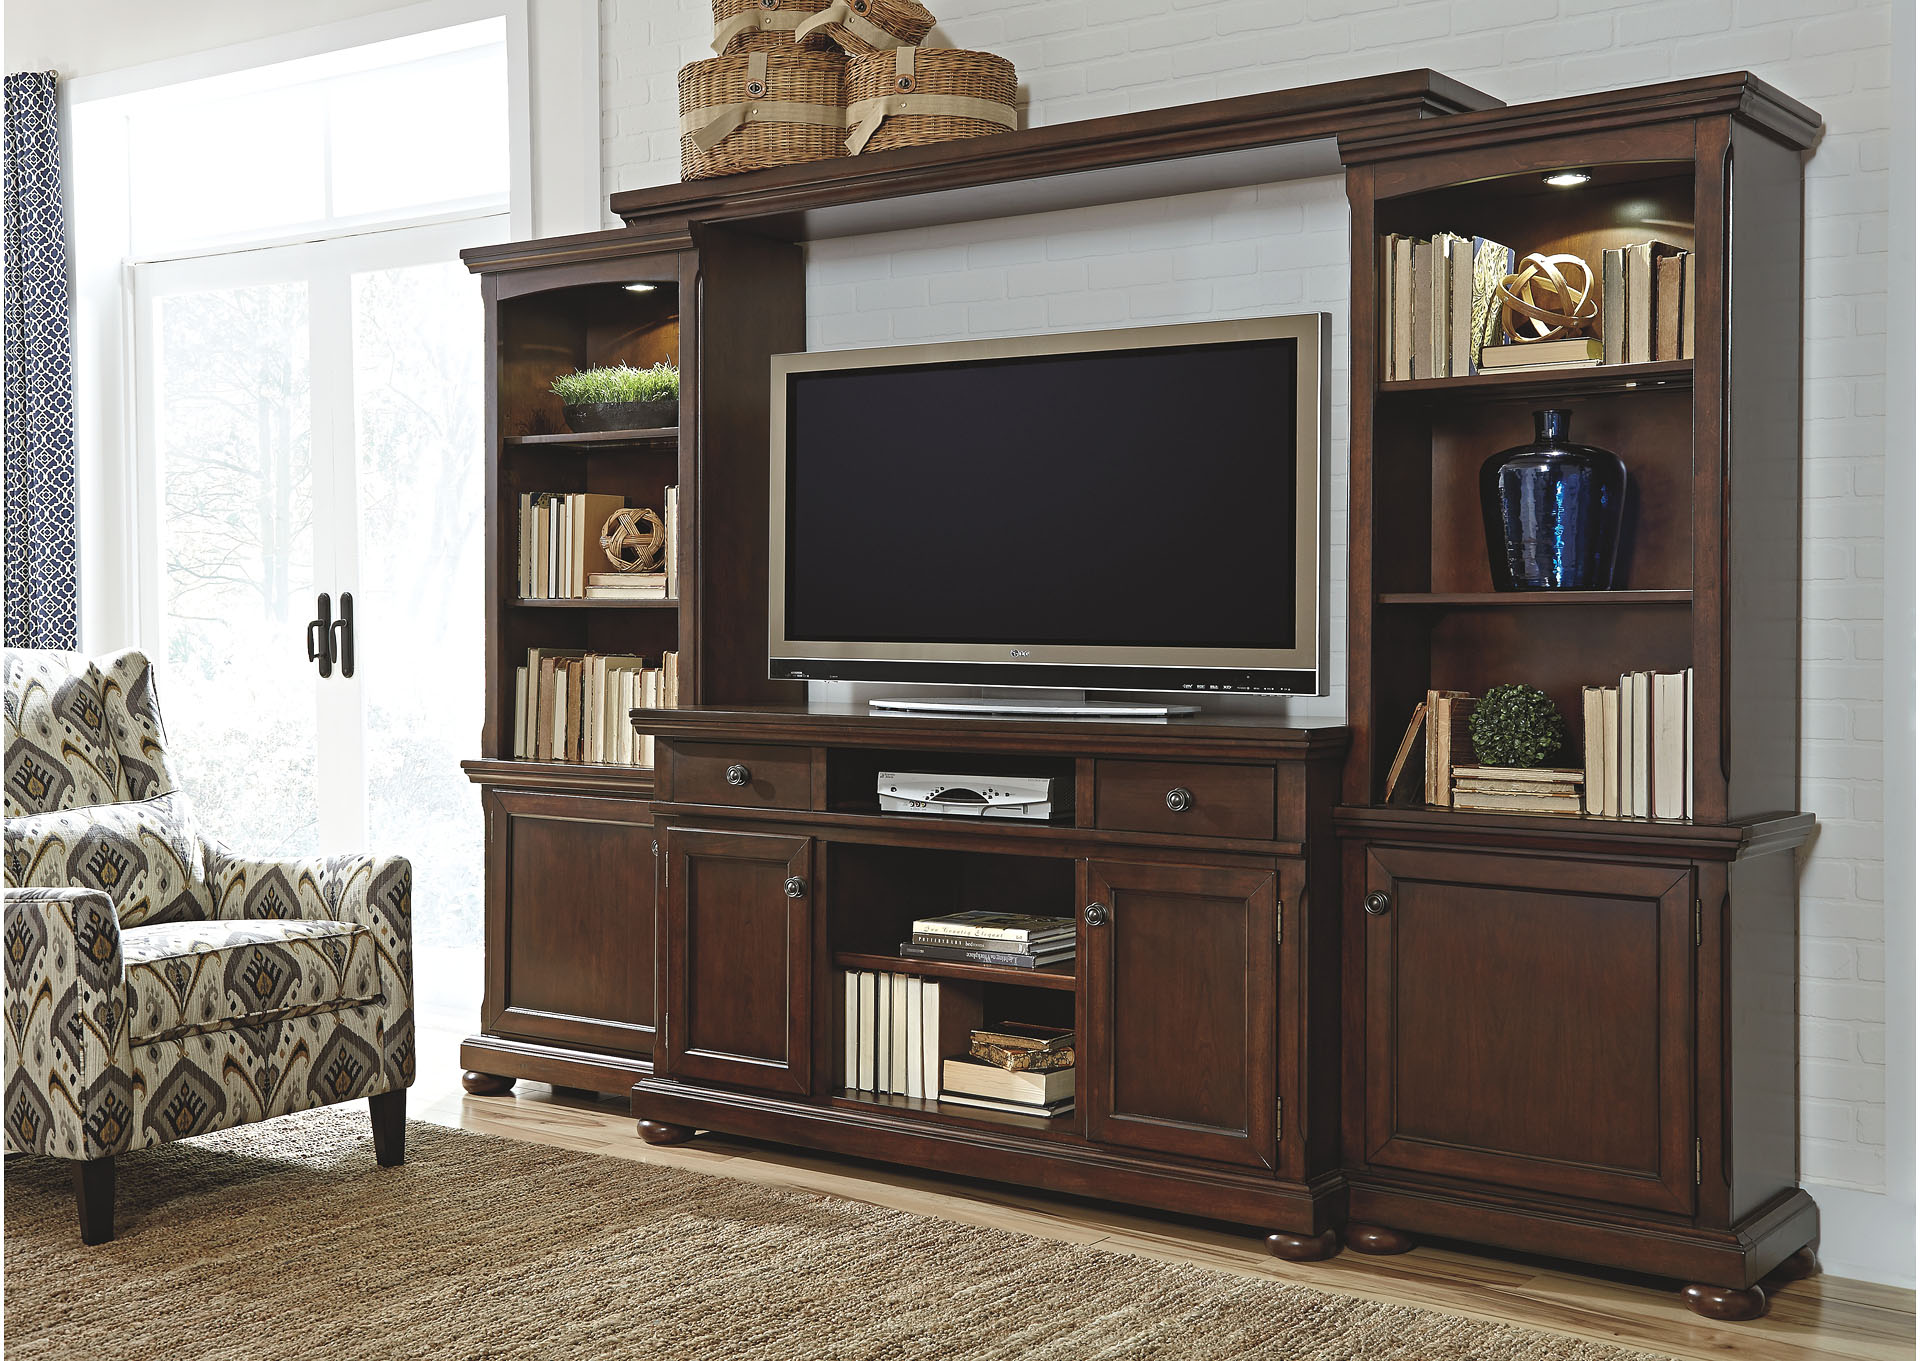 Elegant Jerusalem Furniture Philadelphia Furniture Store | Home Furnishings  Philadelphia, PA Porter Large Entertainment Center